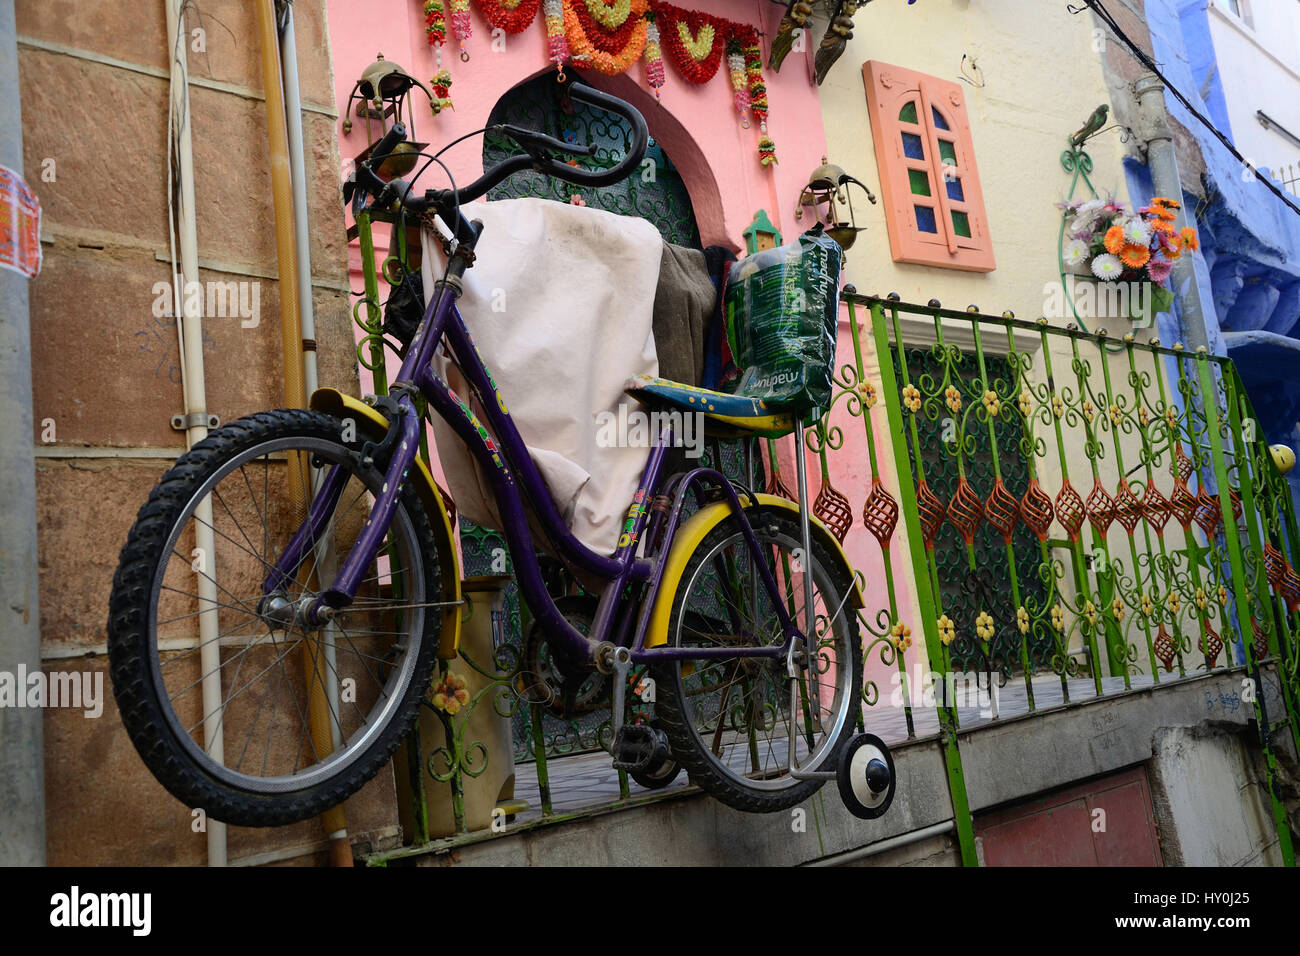 Bicycle tied with iron grill, jodhpur, rajasthan, india, asia - Stock Image